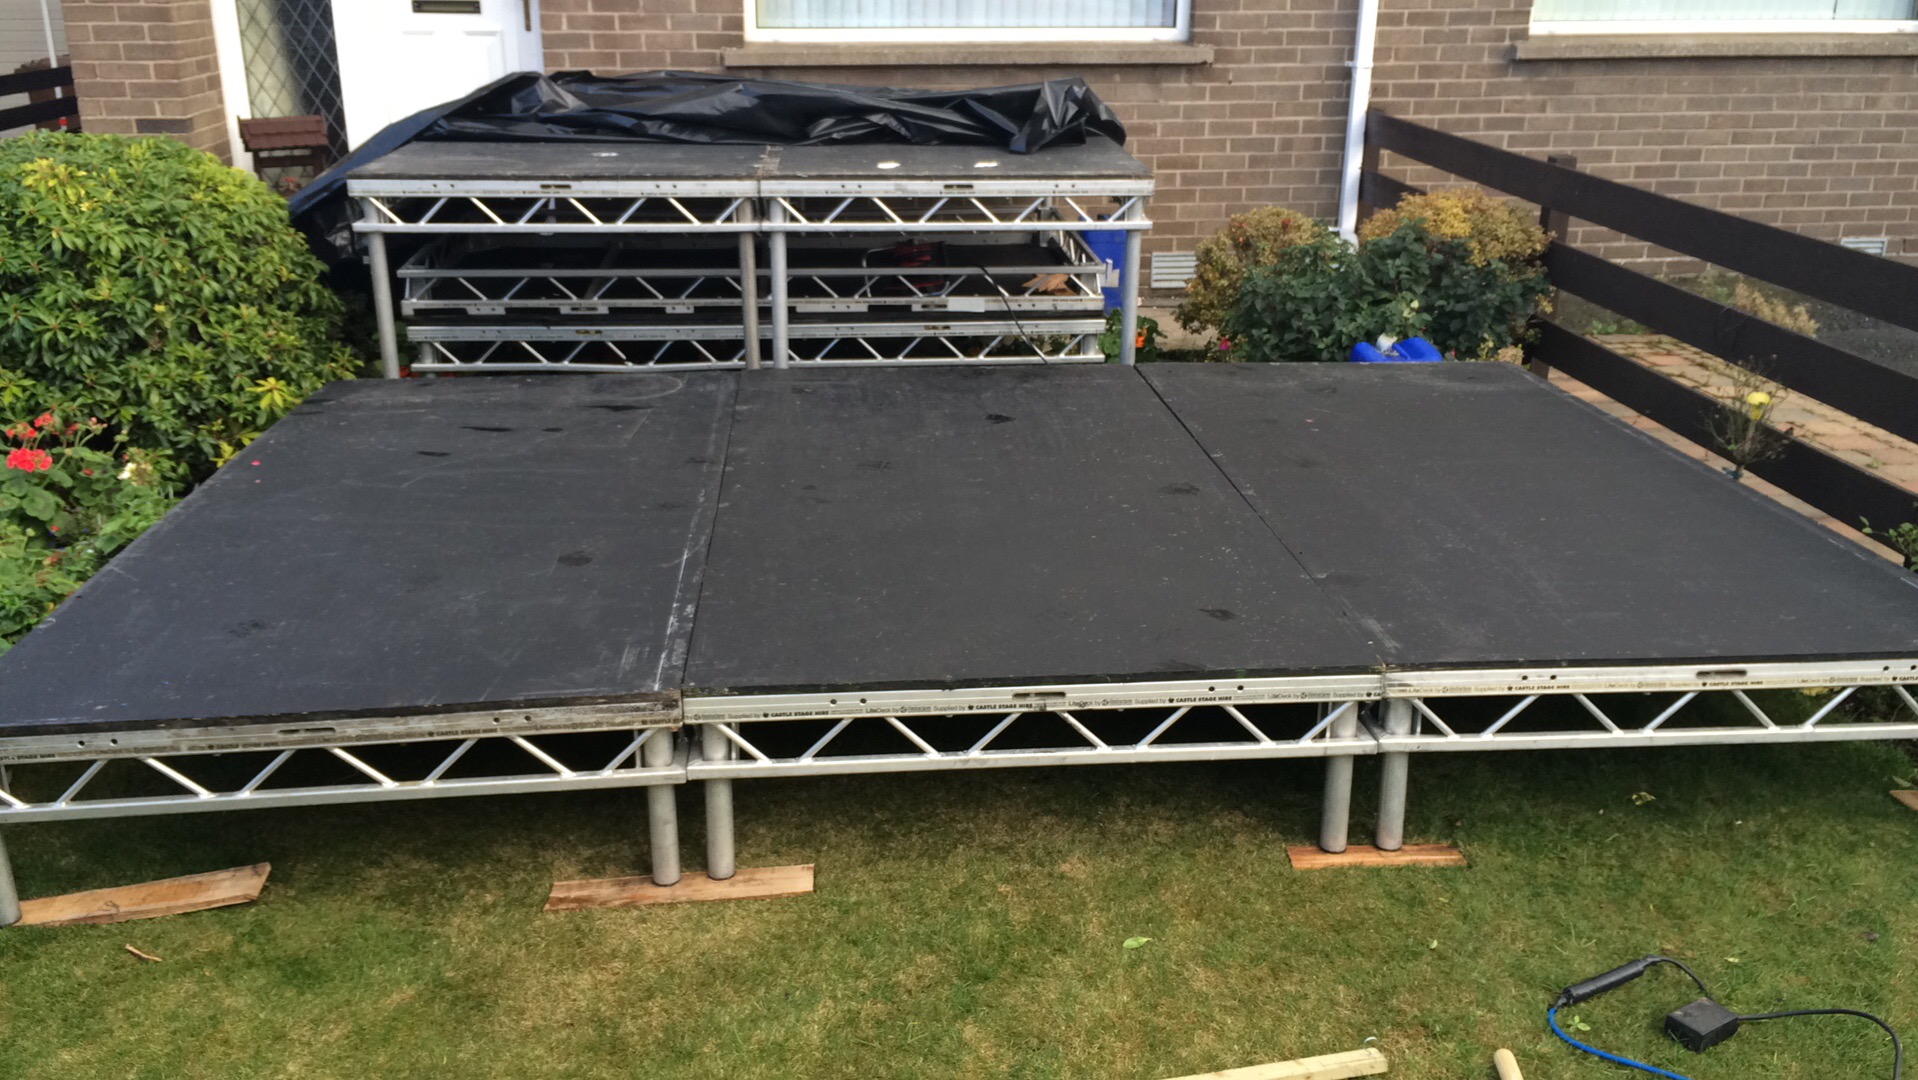 8ftx4ft platforms in place